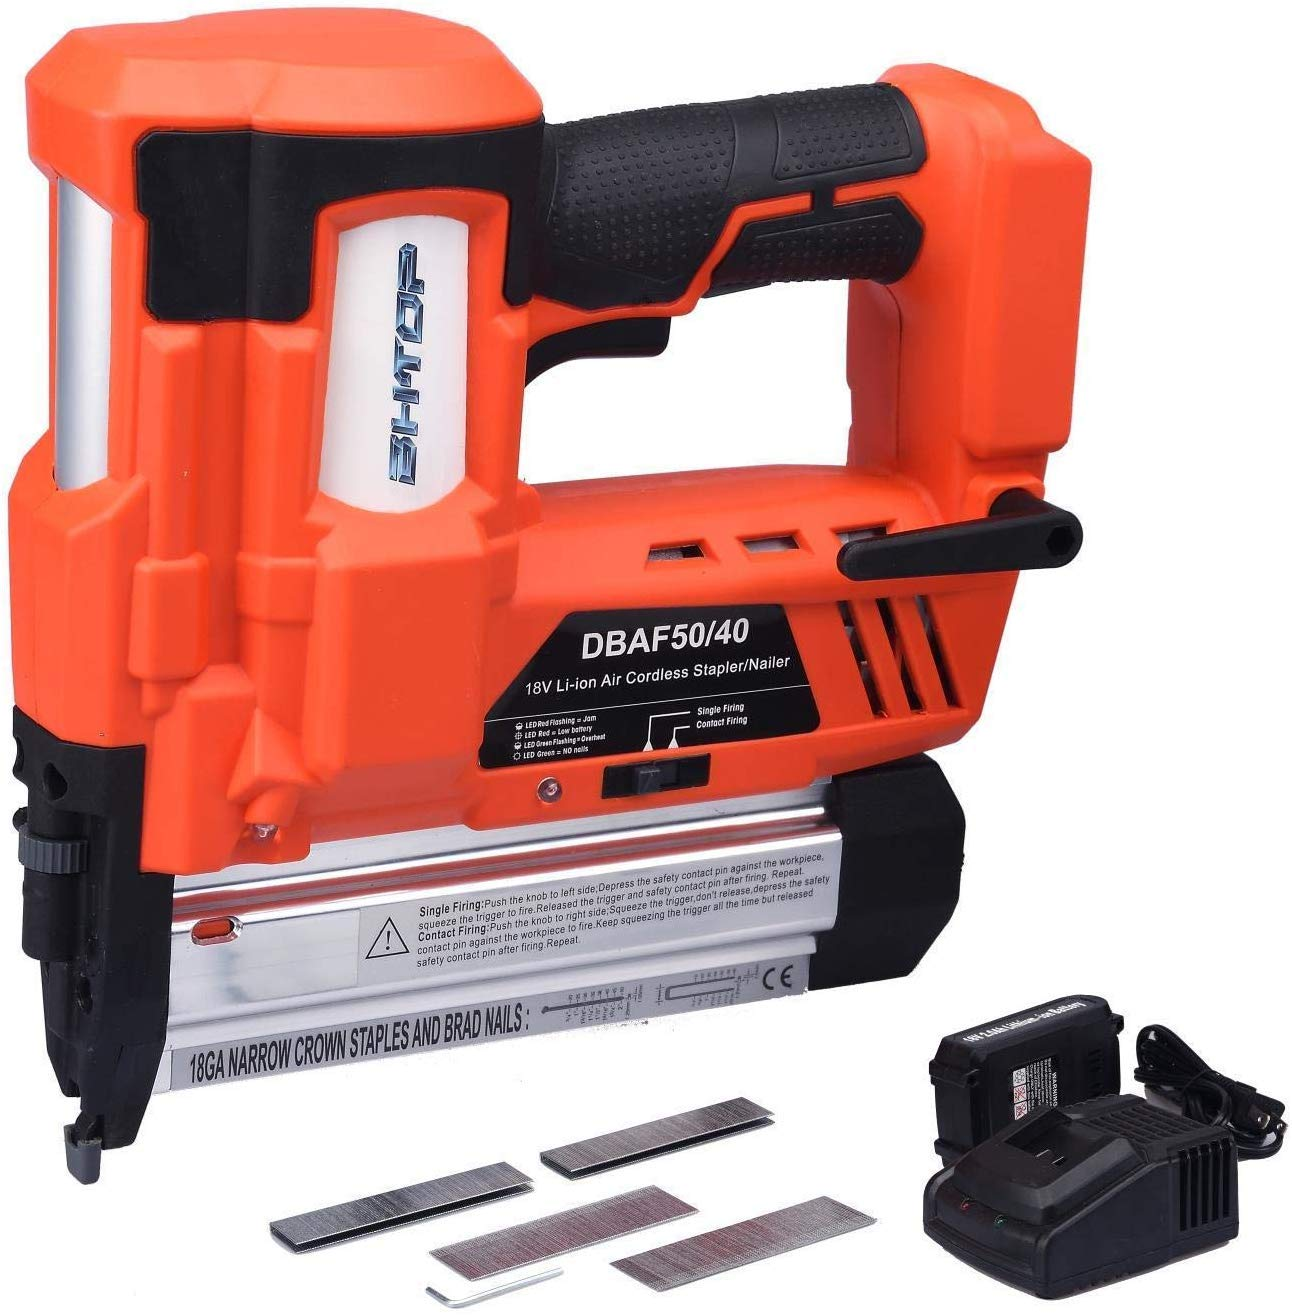 BHTOP Cordless Nailer Stapler- 2 in 1 18Ga Heavy Tool With 18Volt 2Ah Lithium-ion Rechargeable Battery Charger and Carrying Case 1 Battery